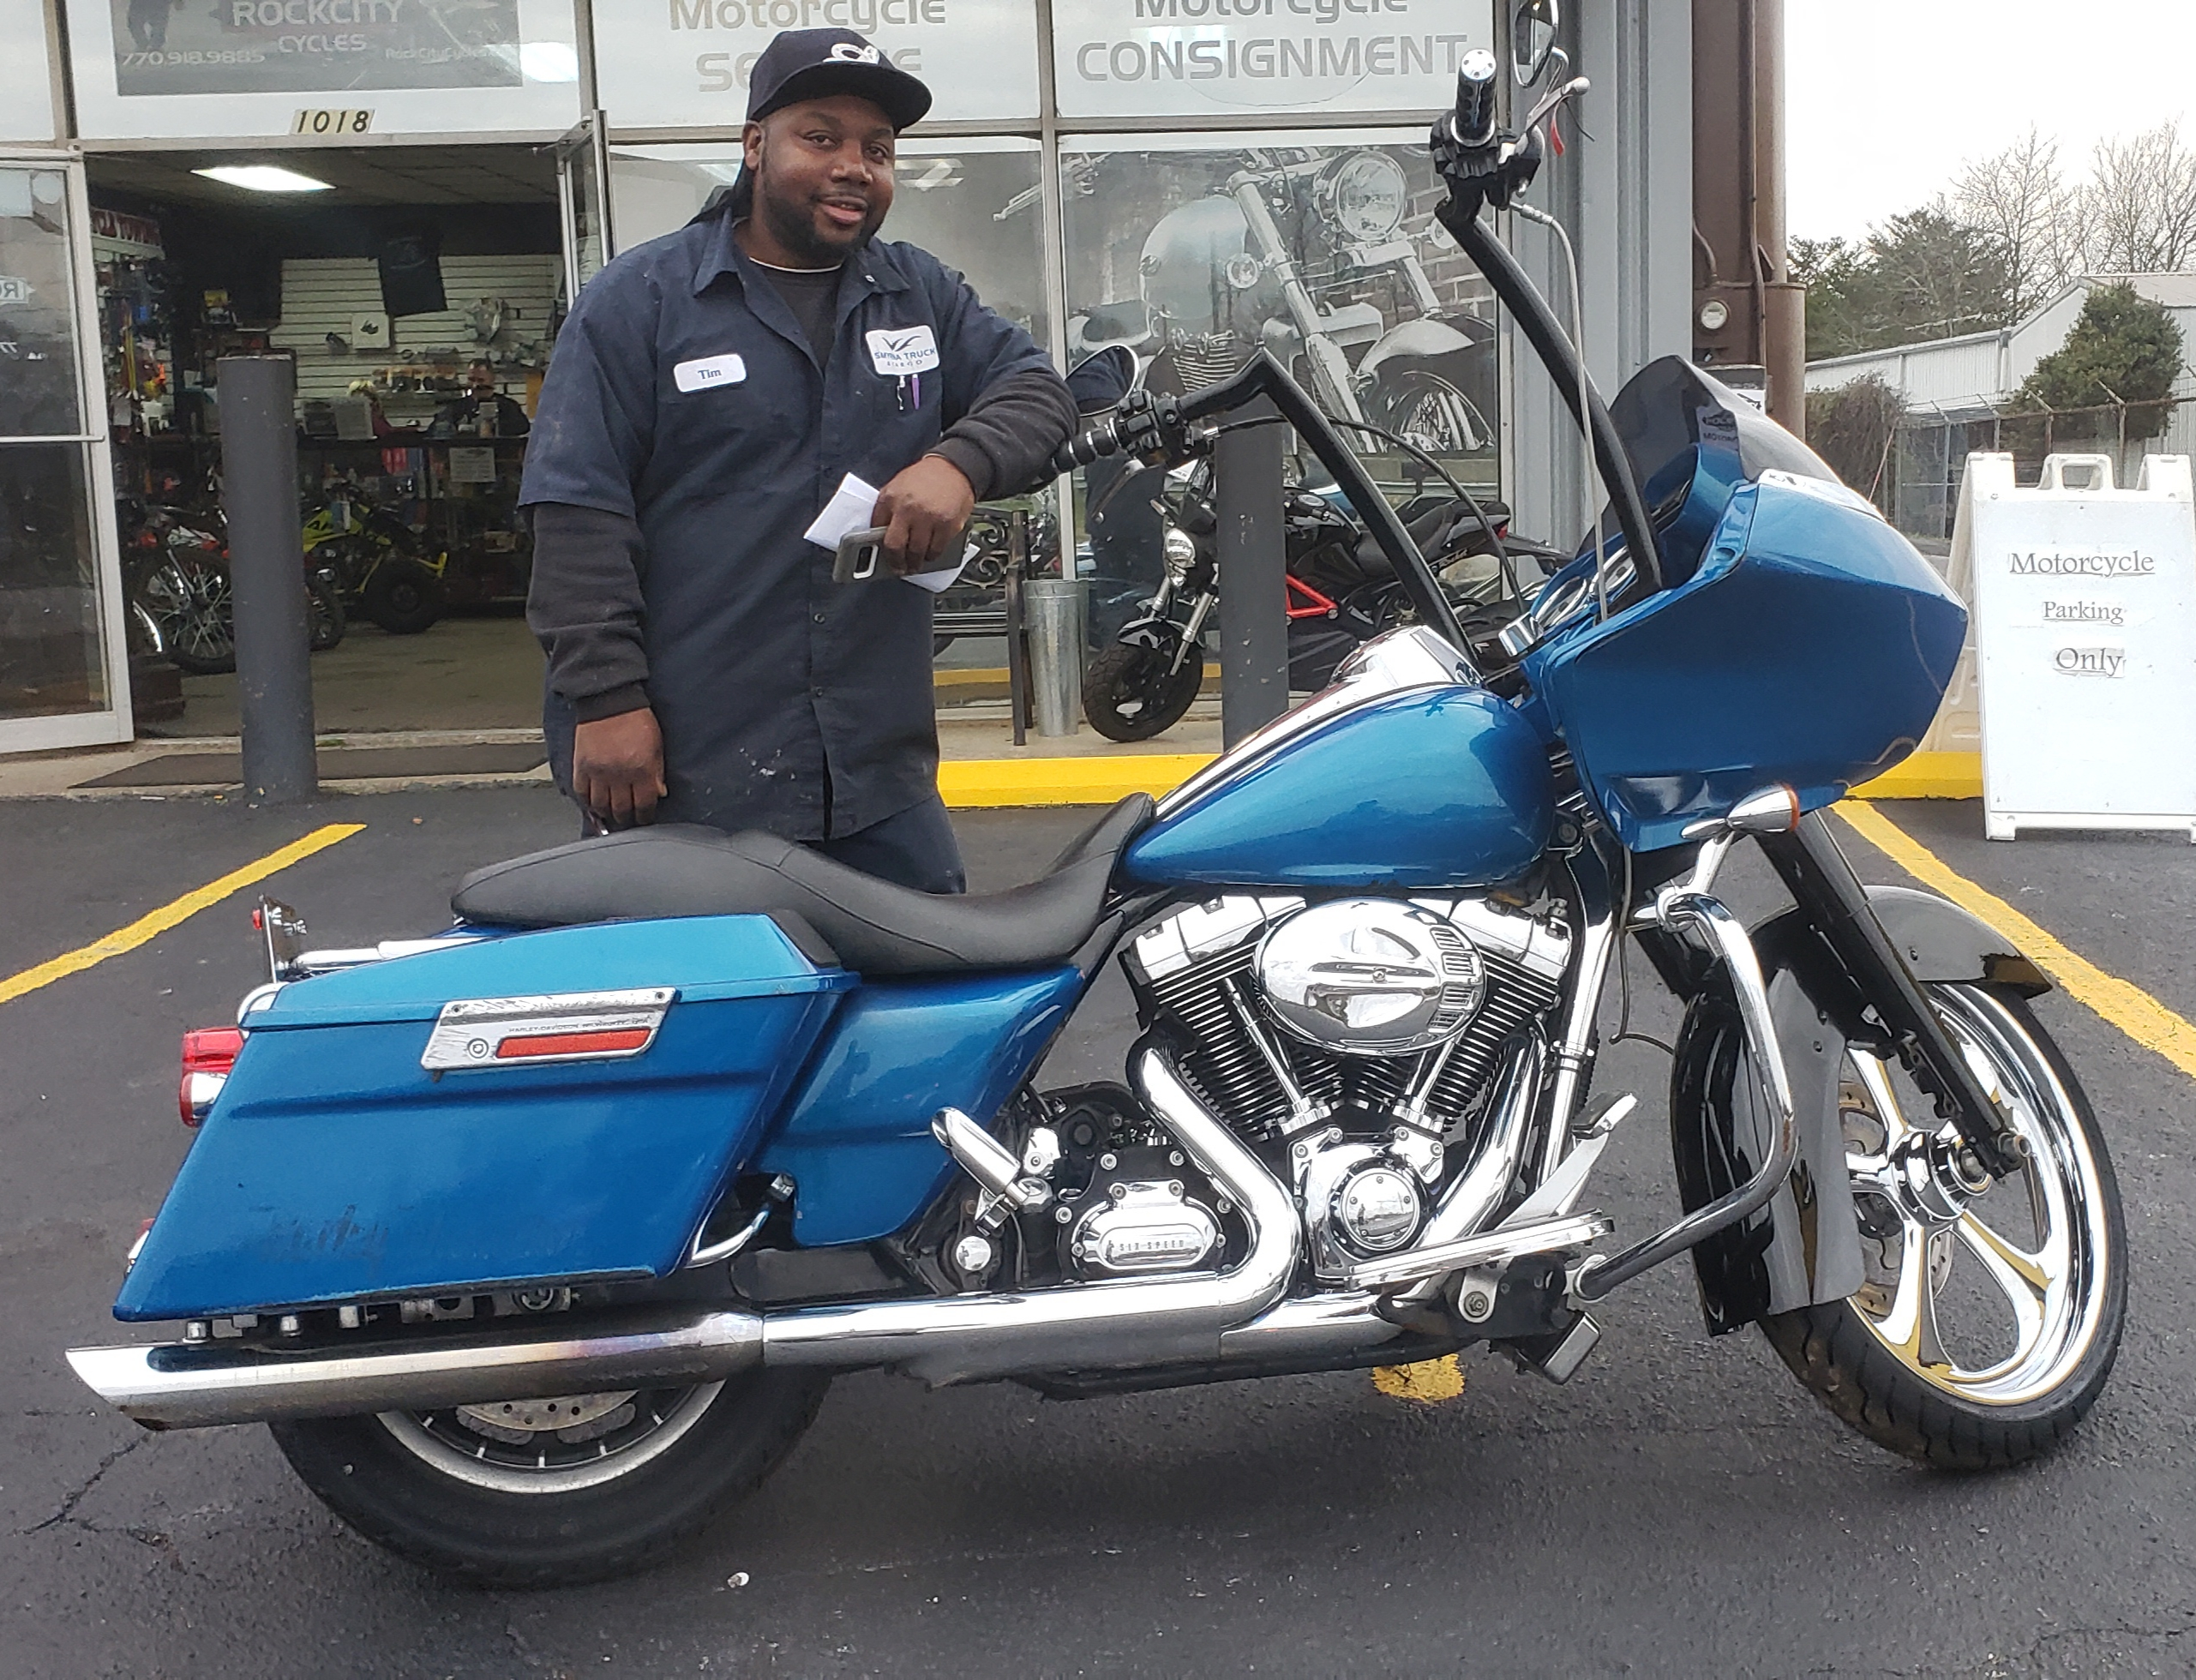 Tim A. with his 2008 Harley-Davidson FLTR Road Glide